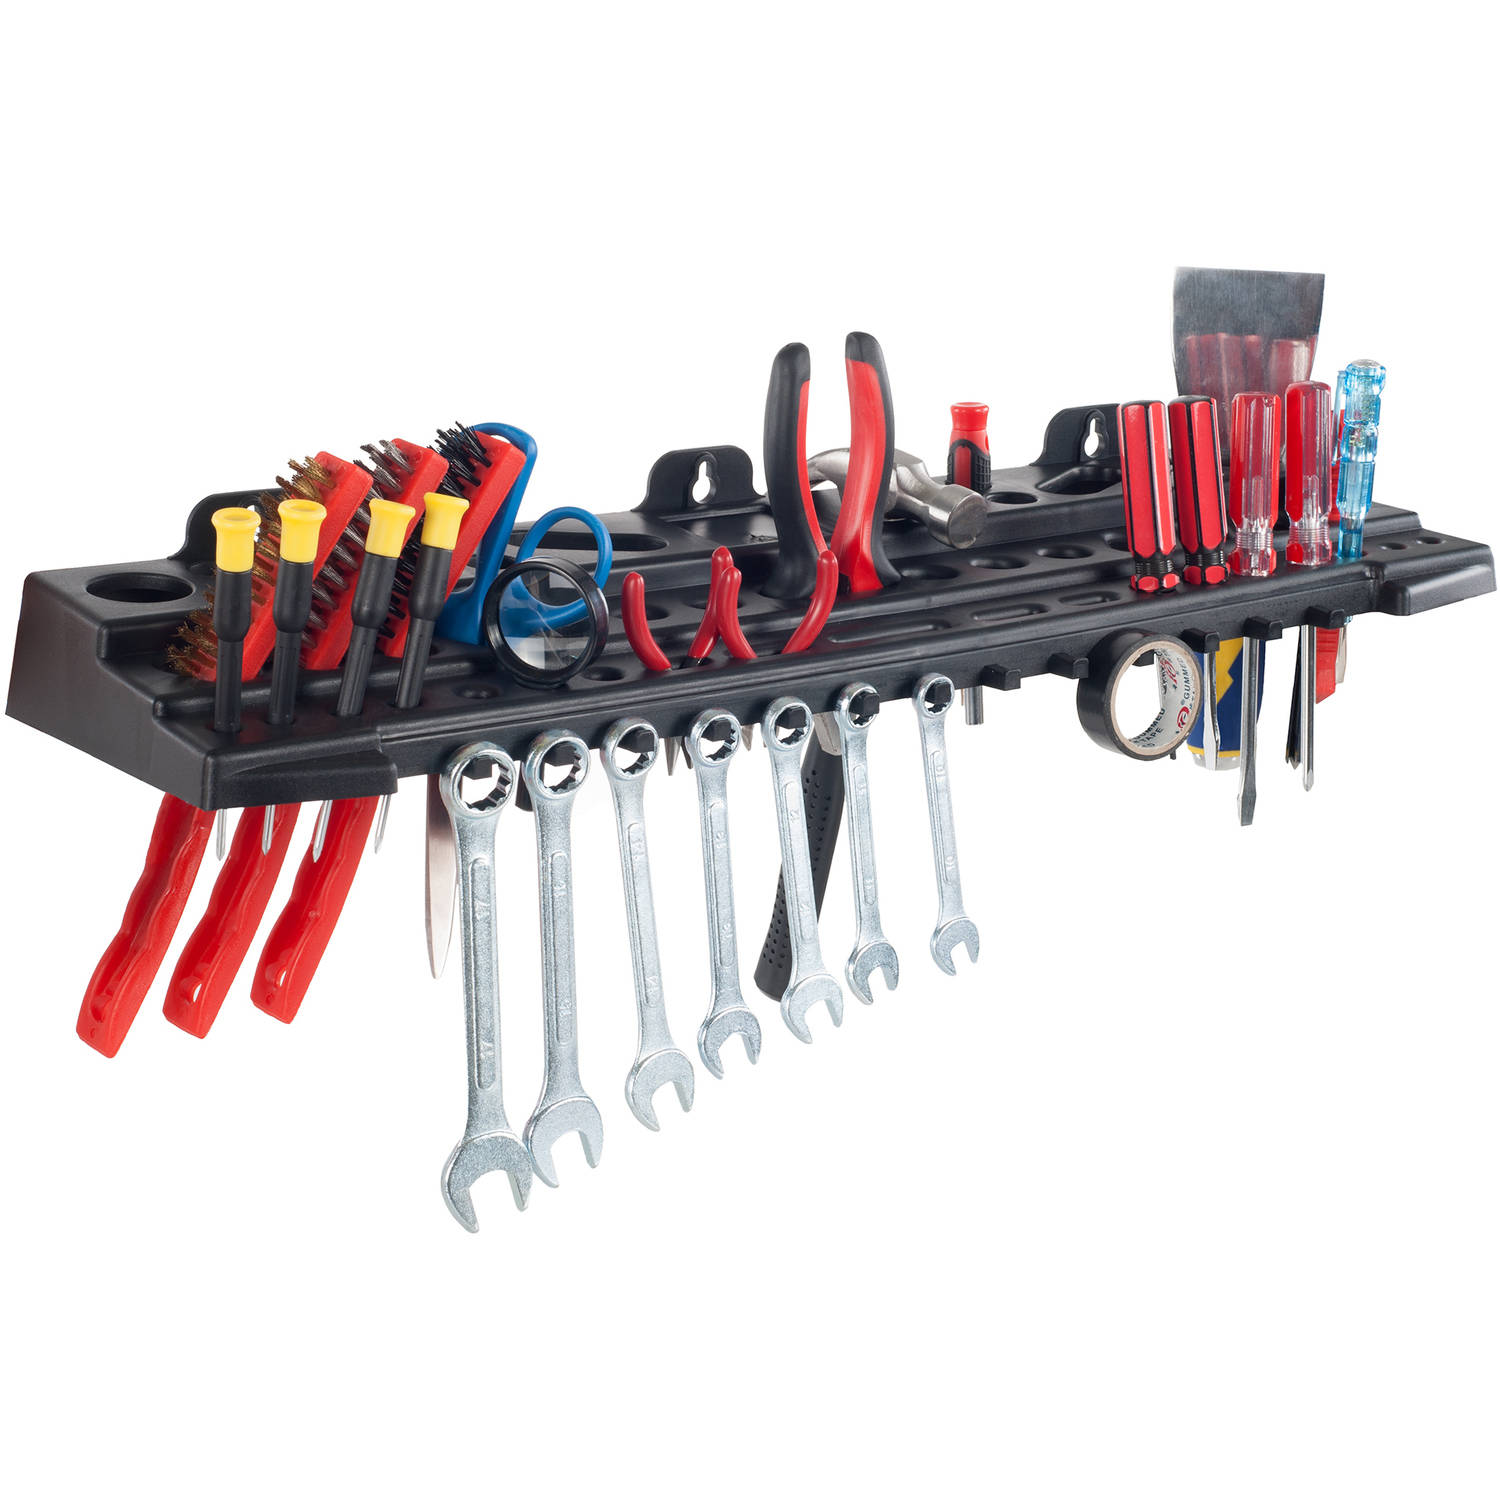 Multitool Organizer for Hand Tools Automotive Tools and